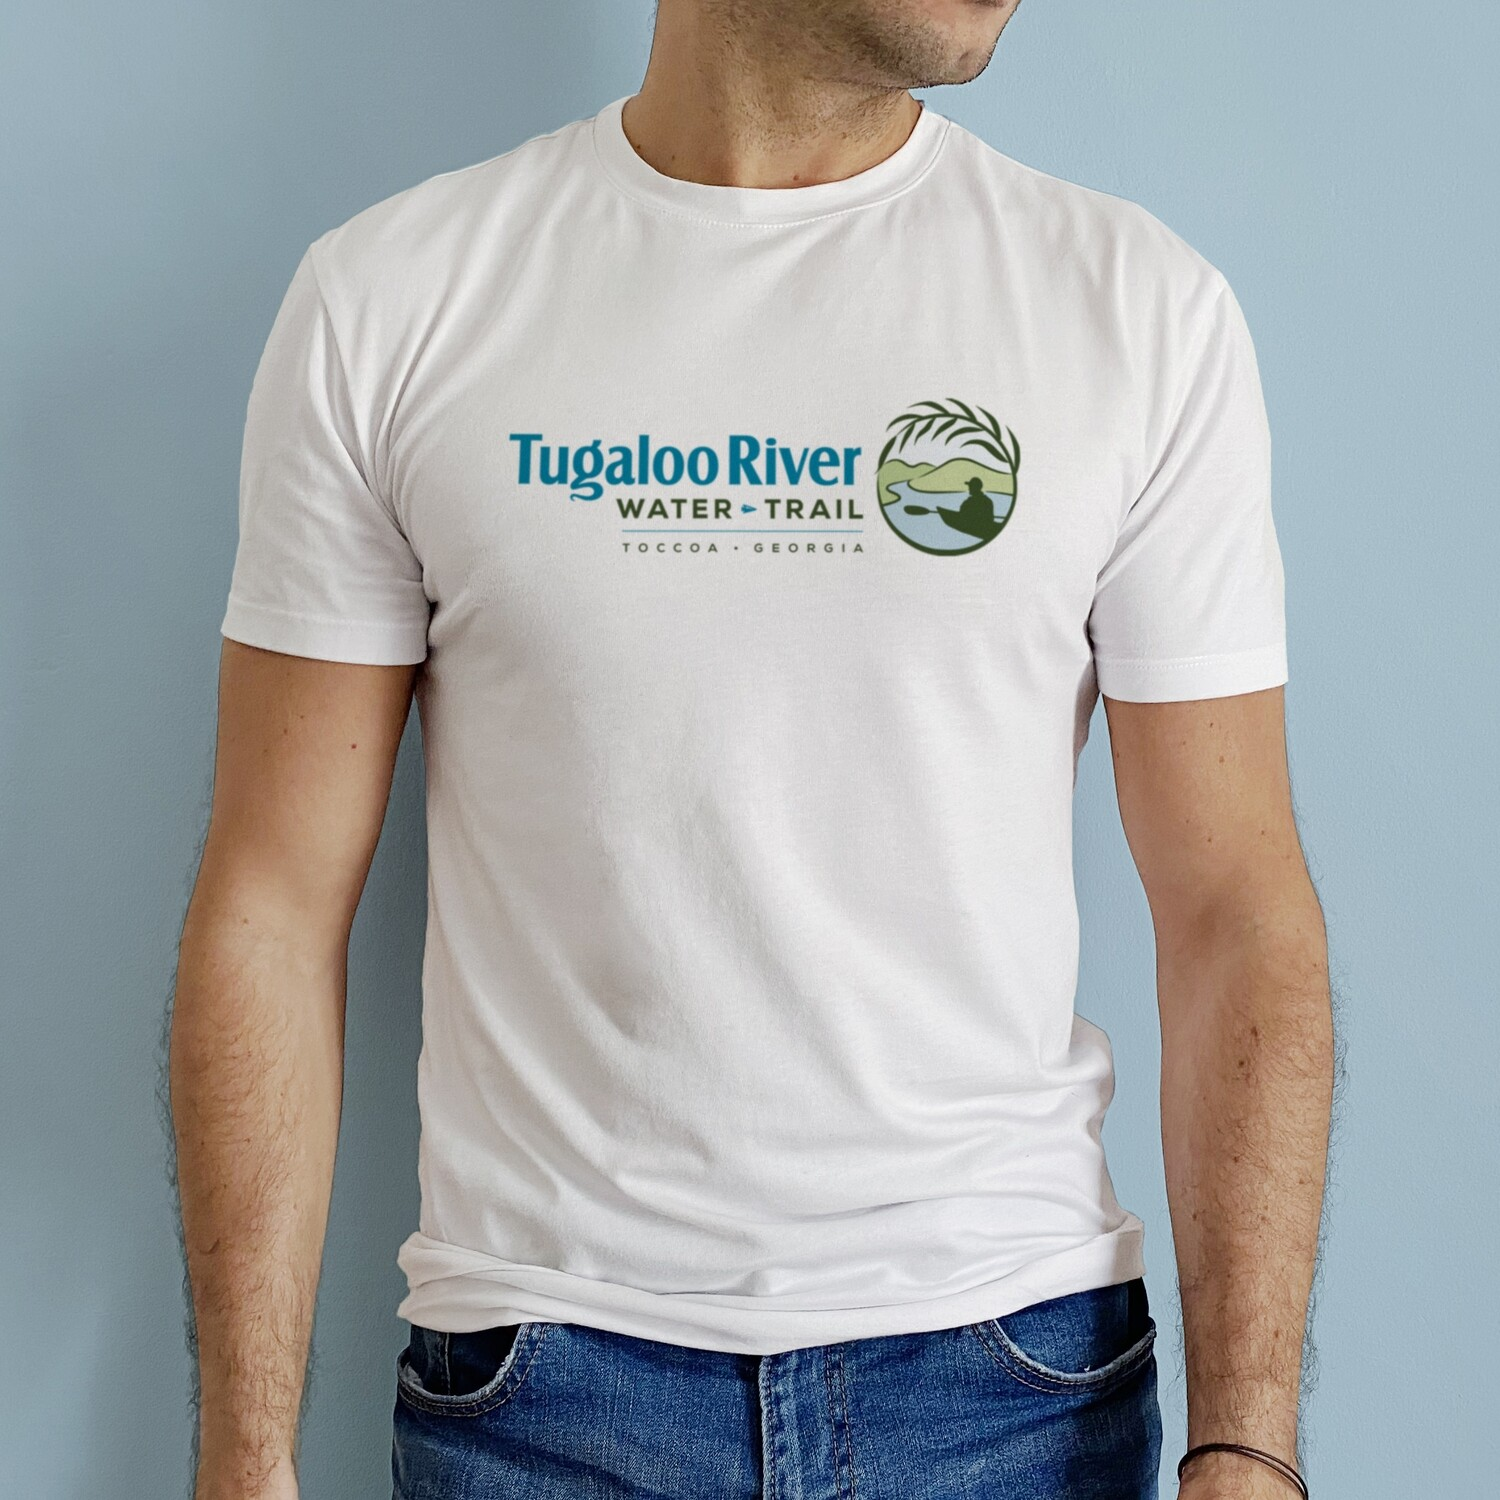 Tugaloo River Water Trail Shirt -- NEW FABRIC